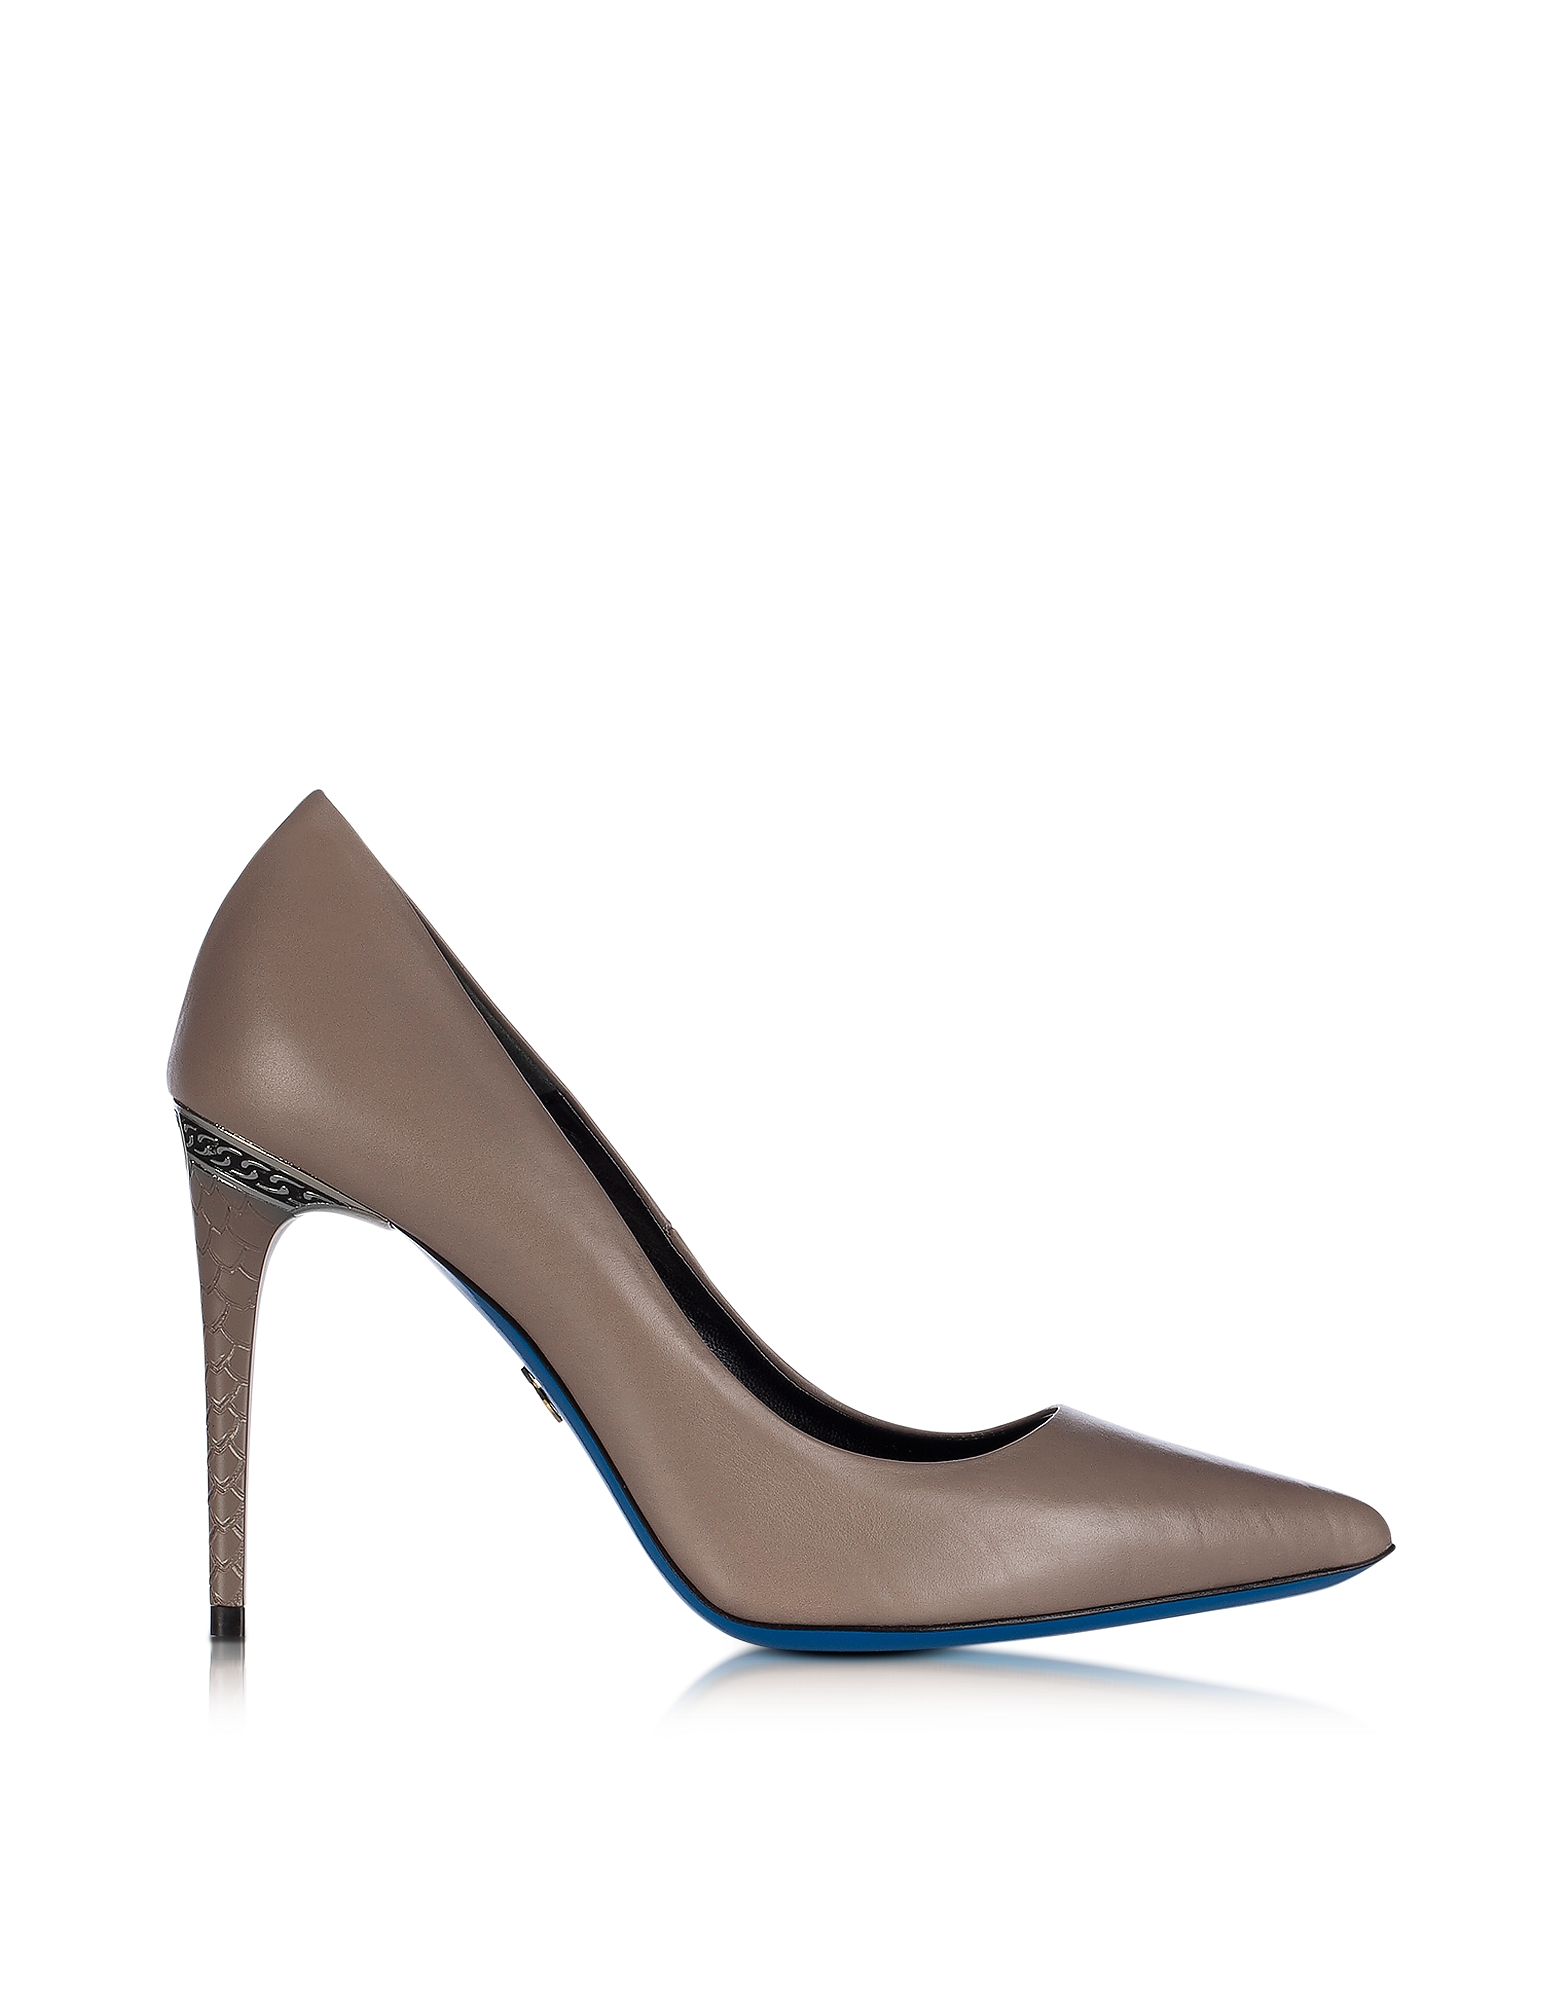 Loriblu Shoes, Dove Grey Leather Pointed Pump